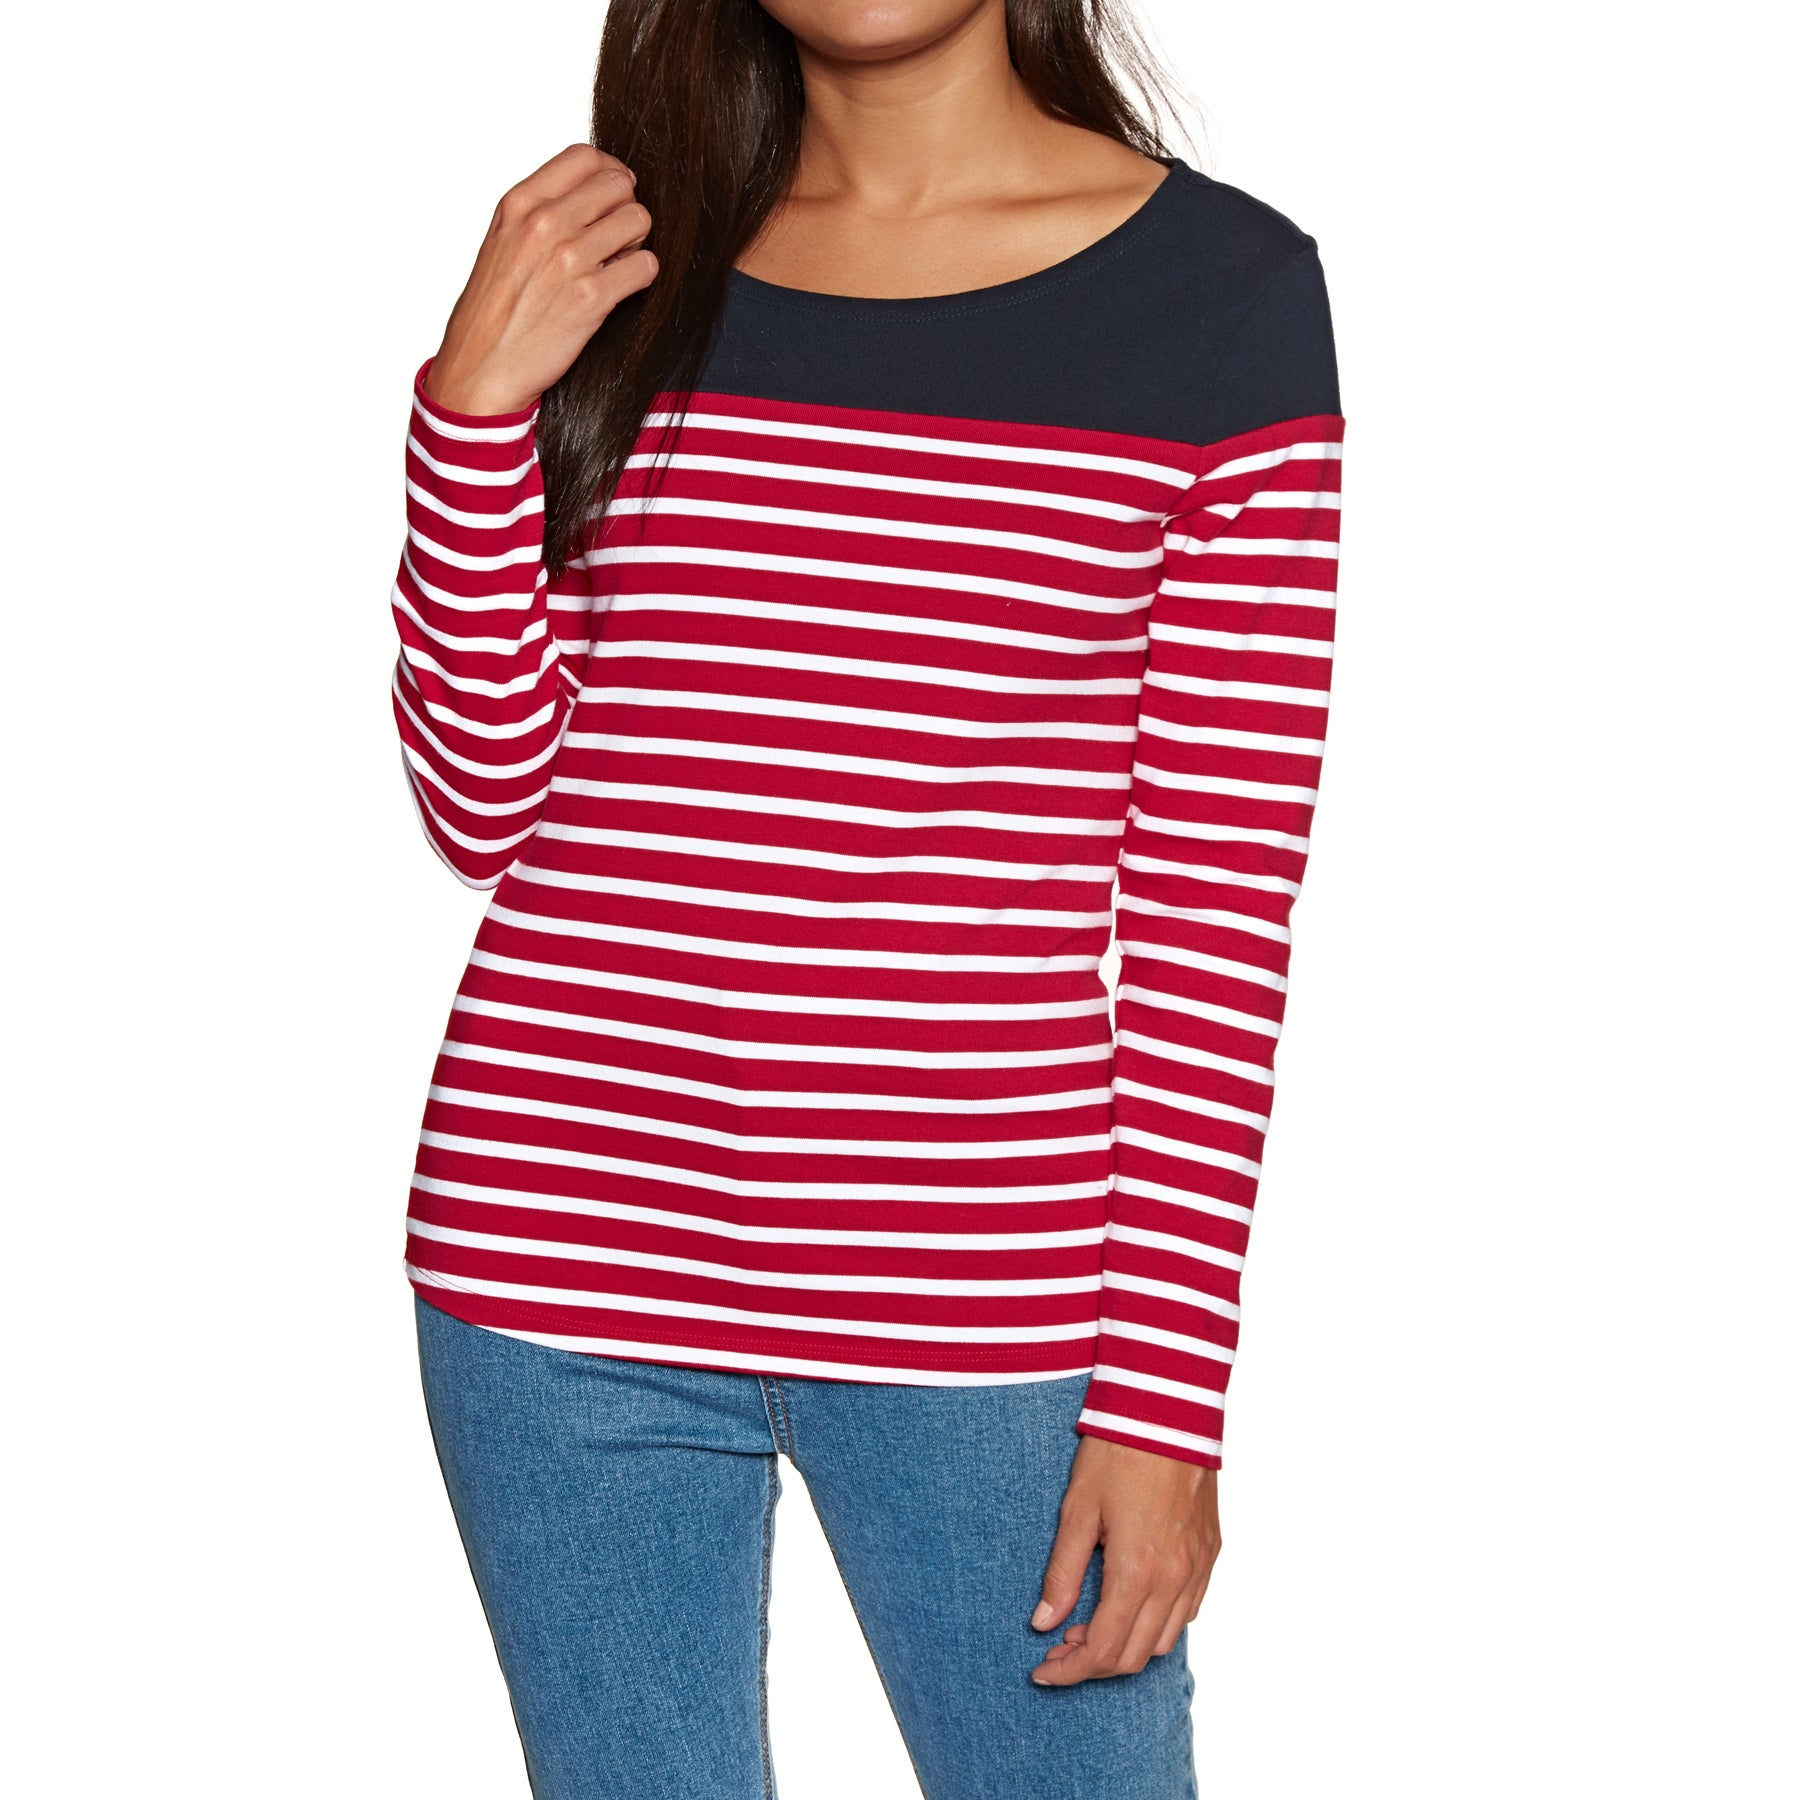 Twist Top Femme Breton Superdry Back Available Surfdome From RrprtHWqn